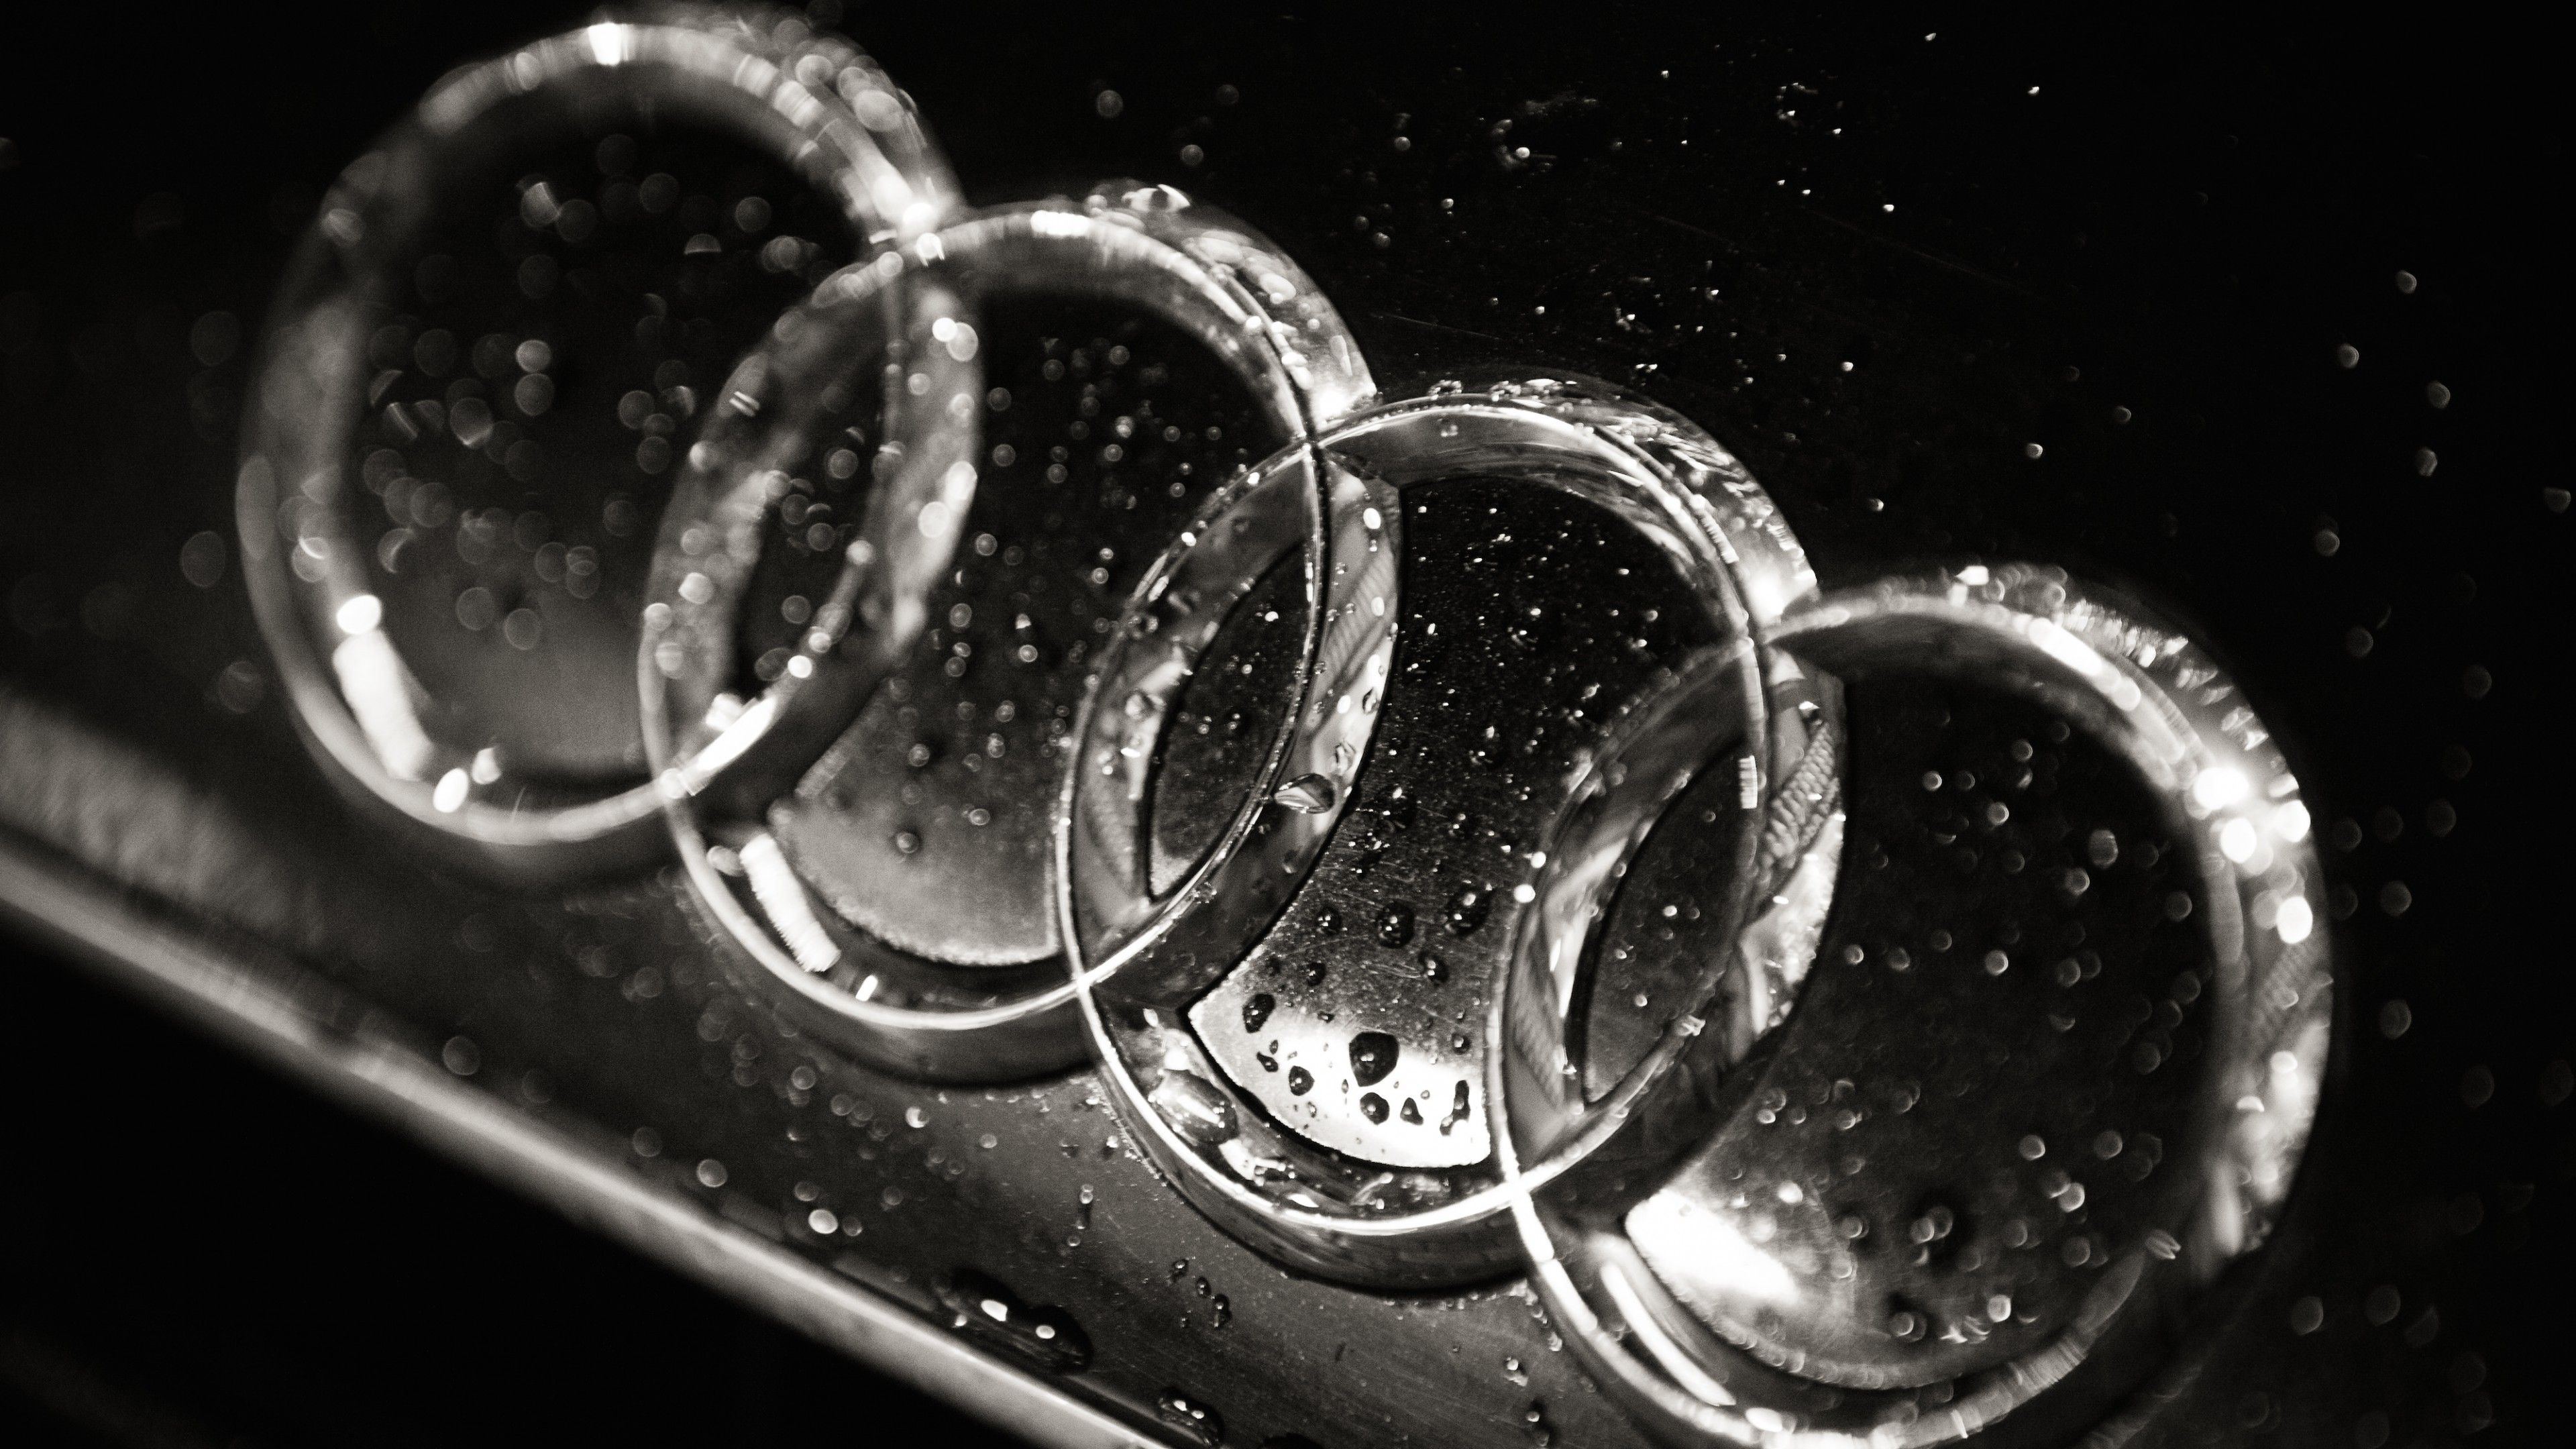 3840x2160 Audi Logo Wallpapers, Pictures, Images